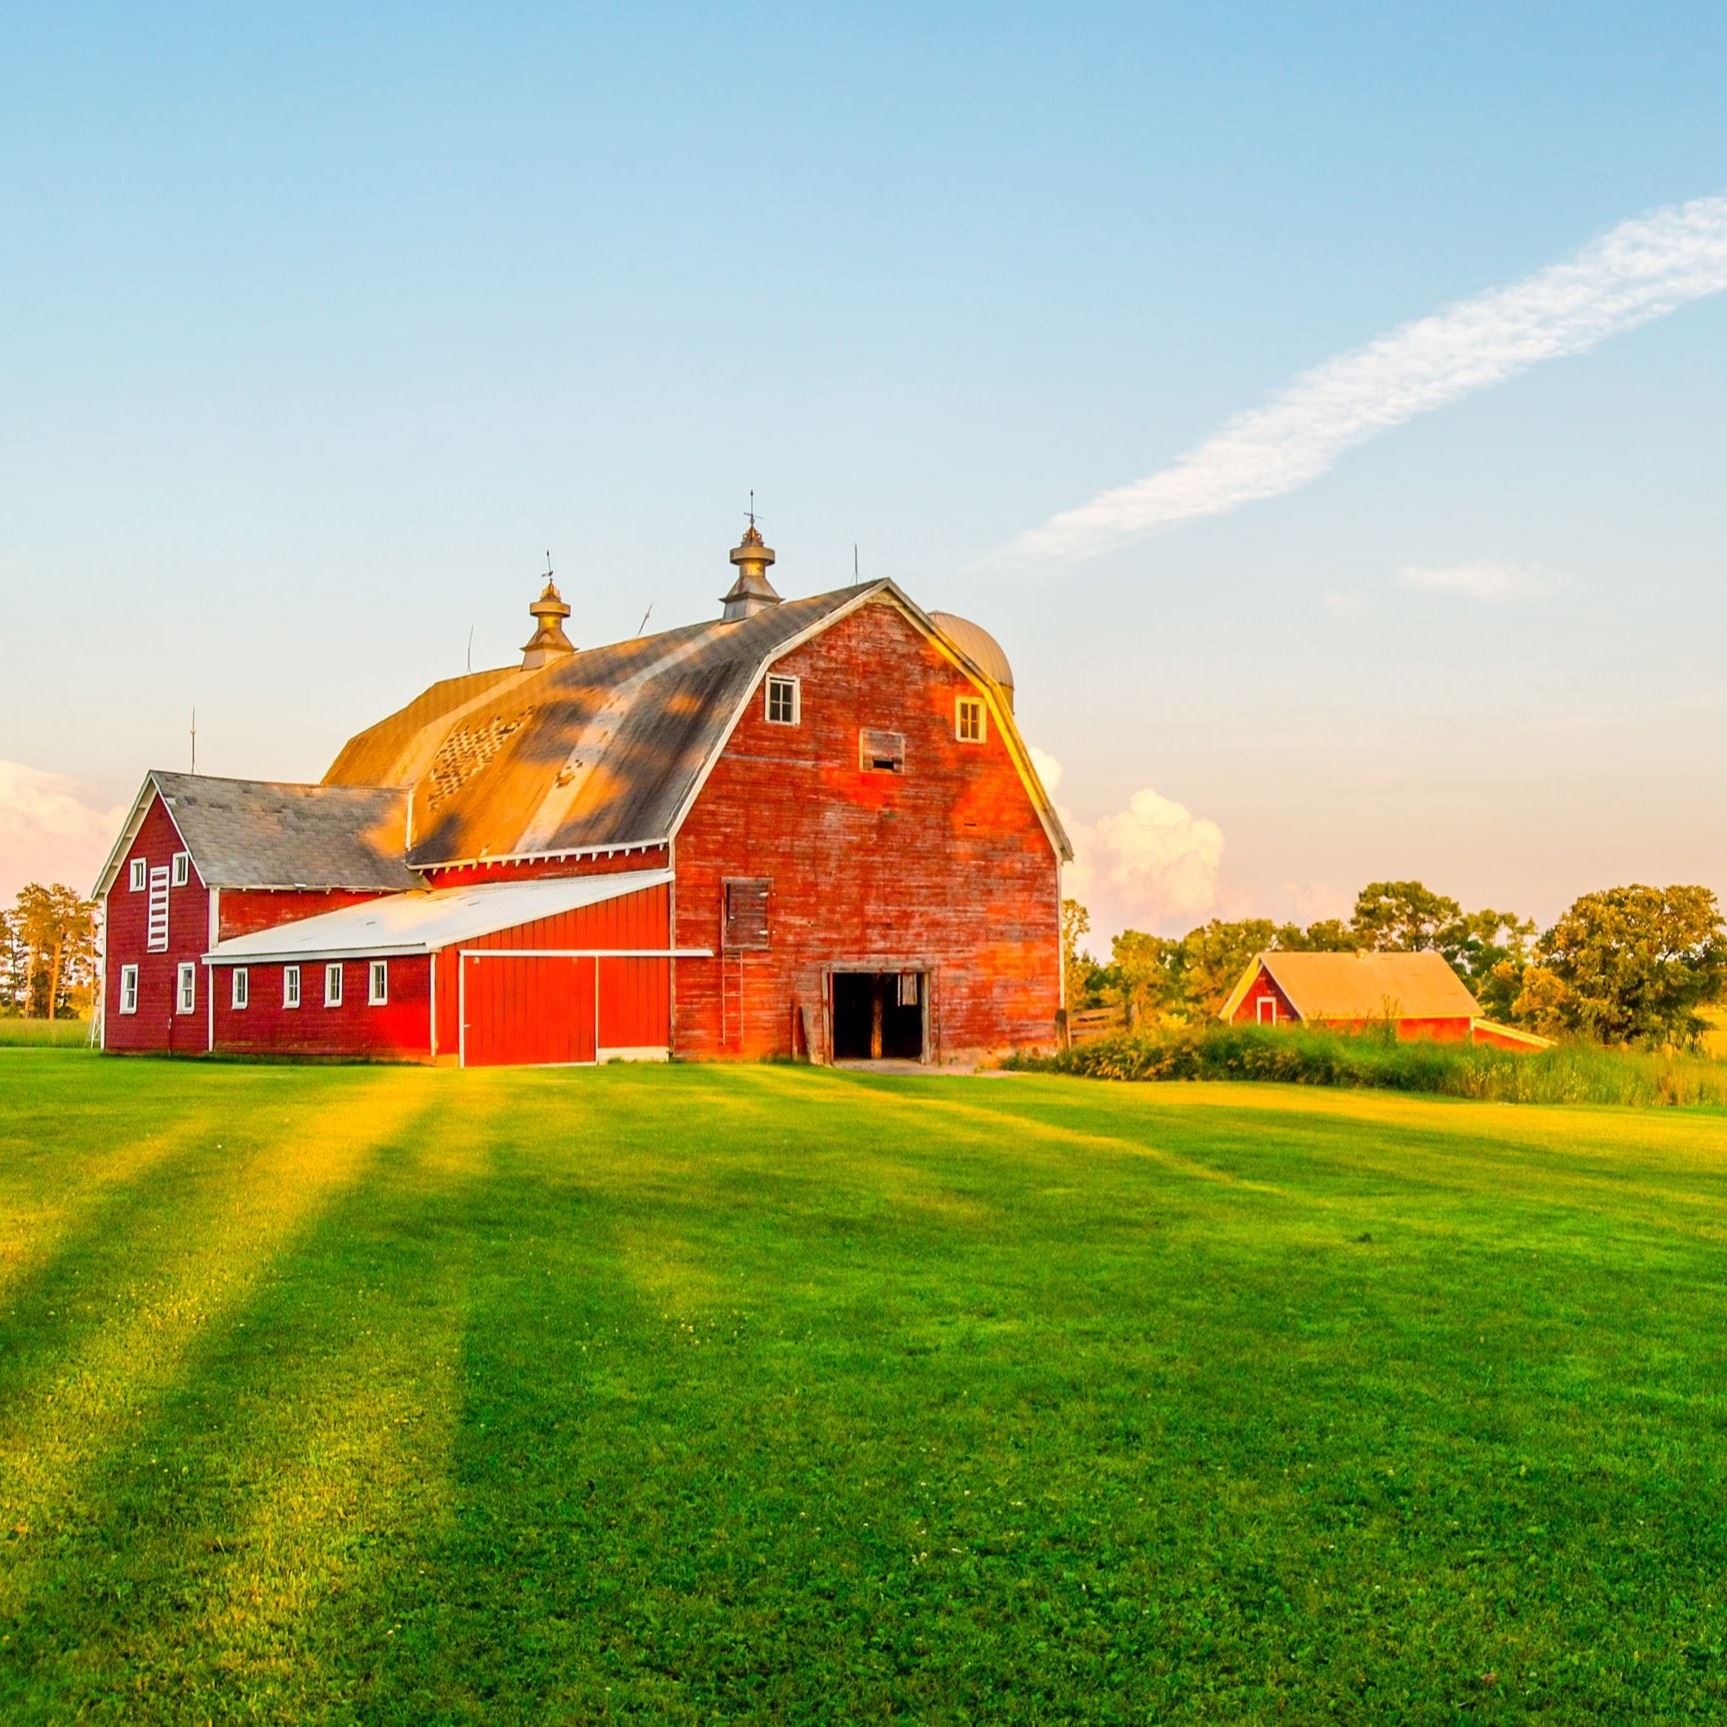 Red barn near large field.